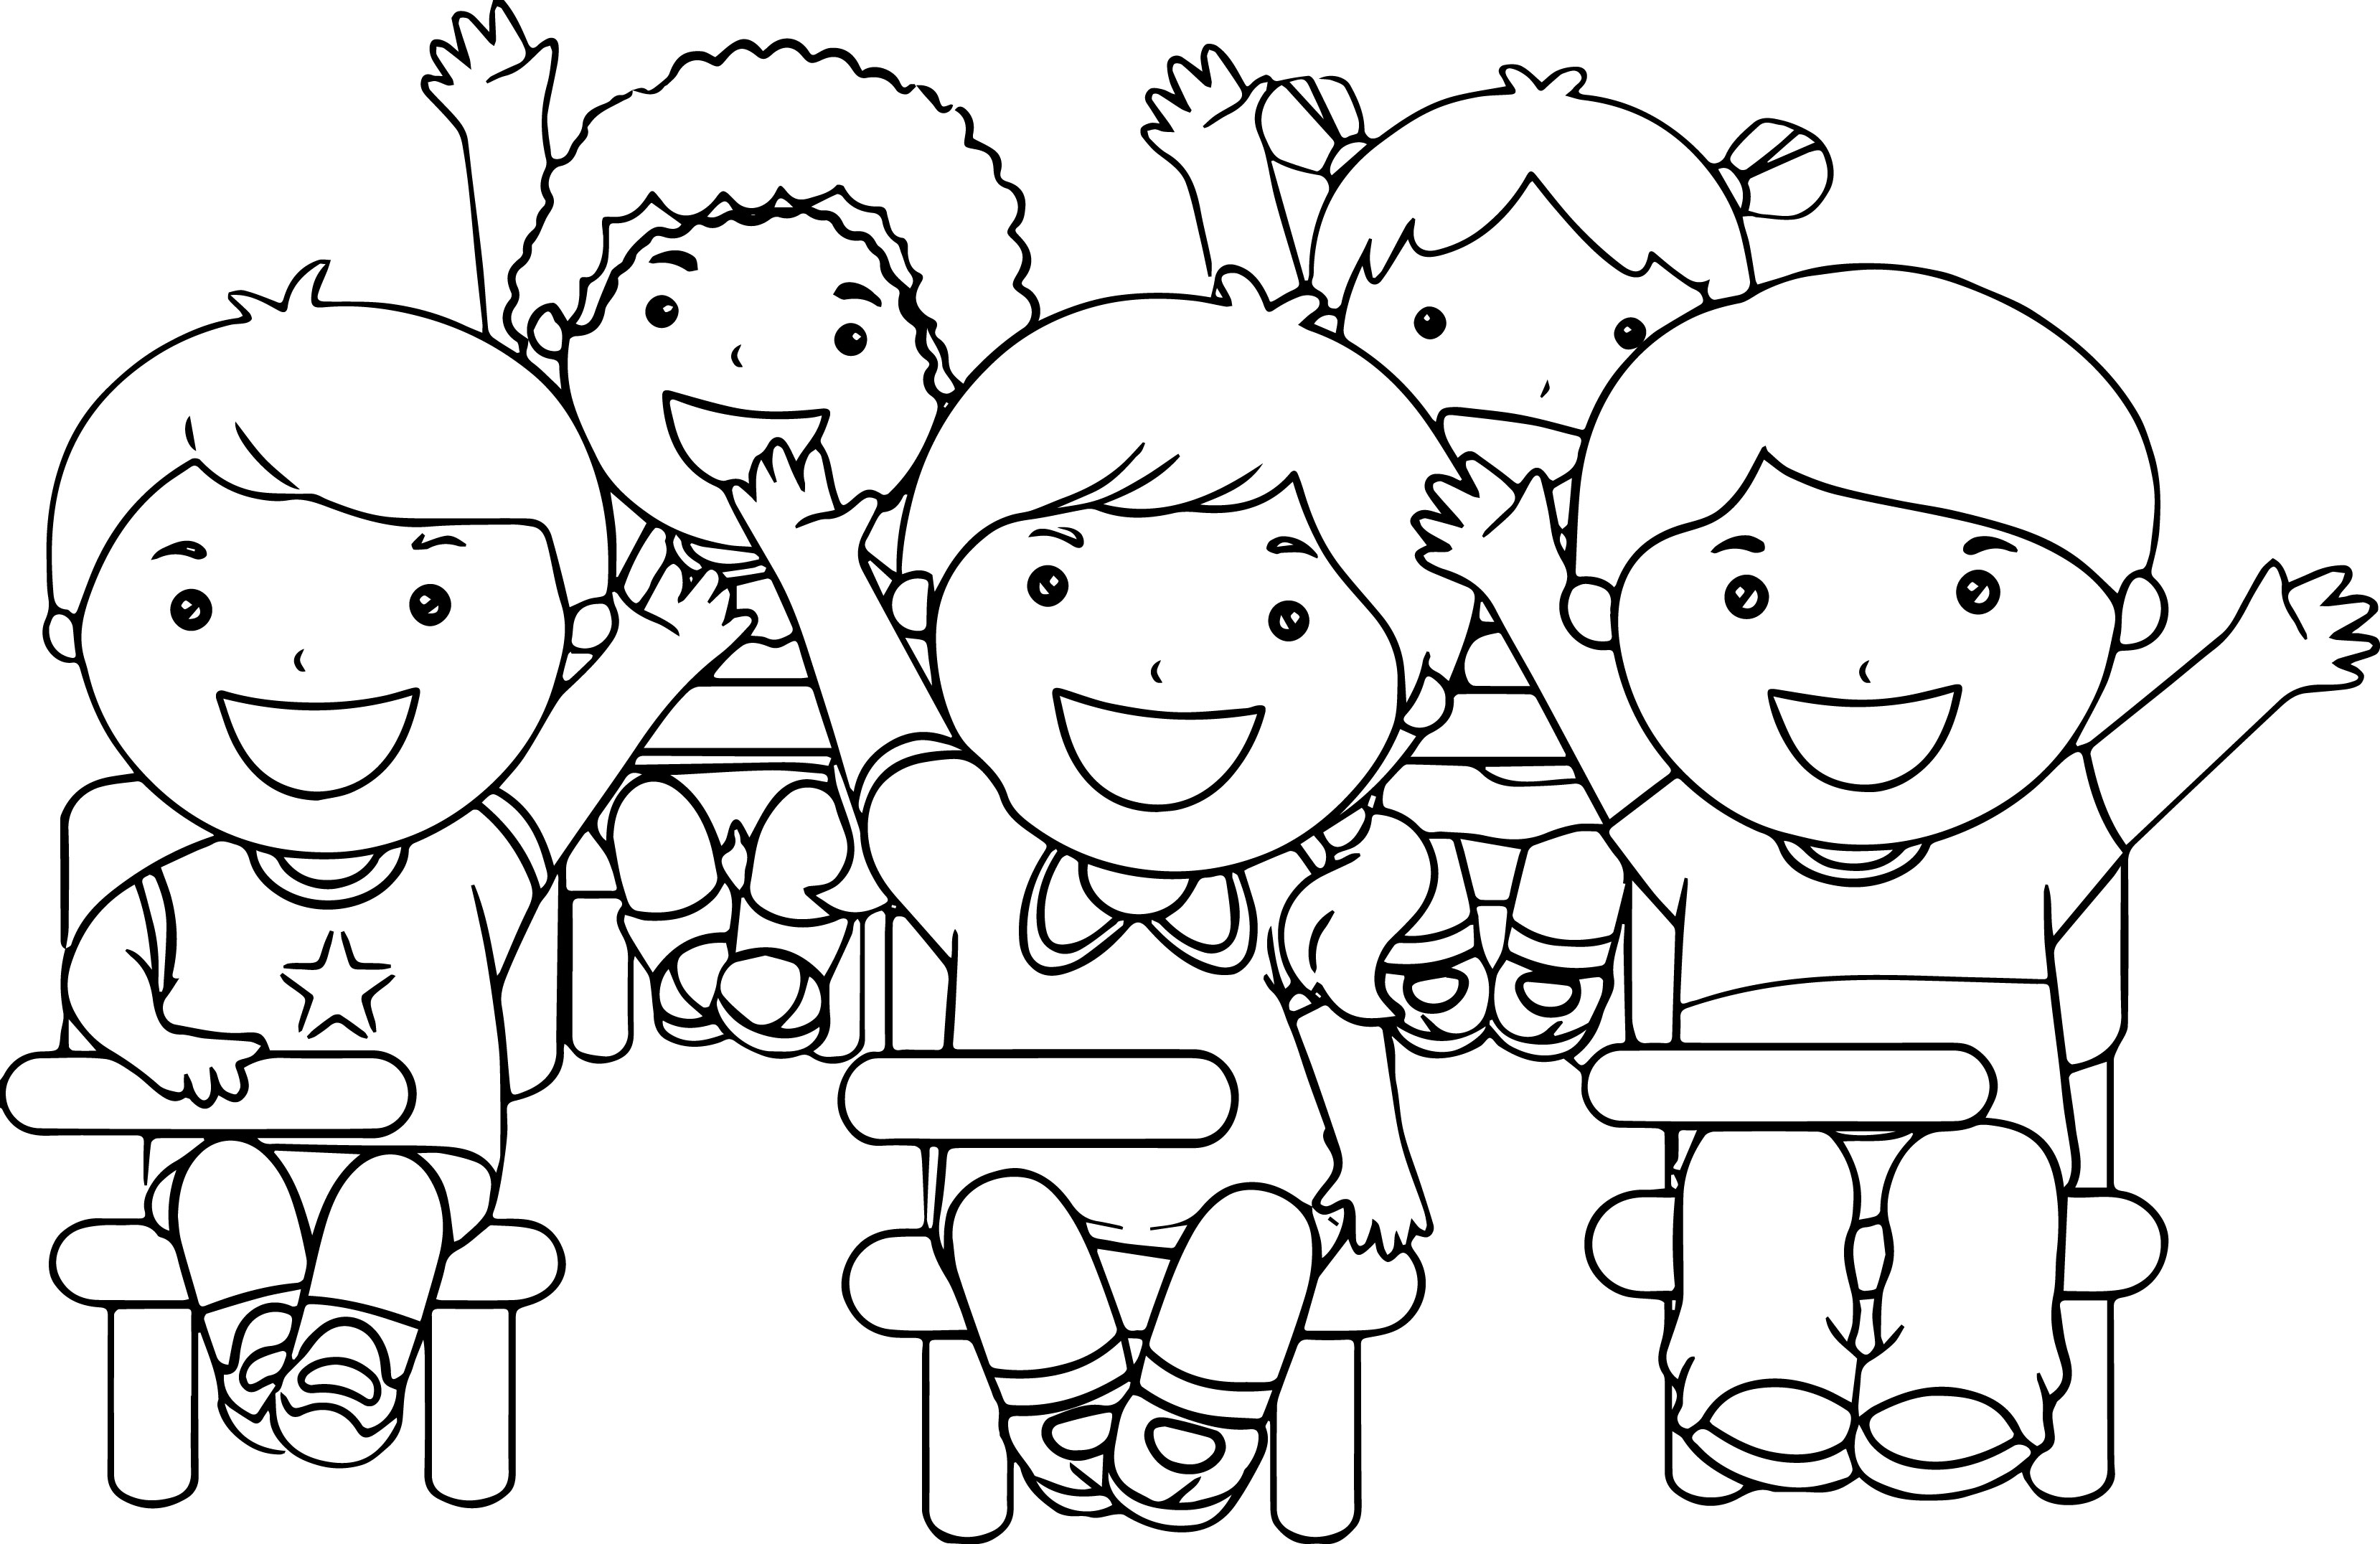 Children Coloring Pages isolution Printable Of Engaging Line Coloring Pages for Kids 19 Children Elegant Paper to Print